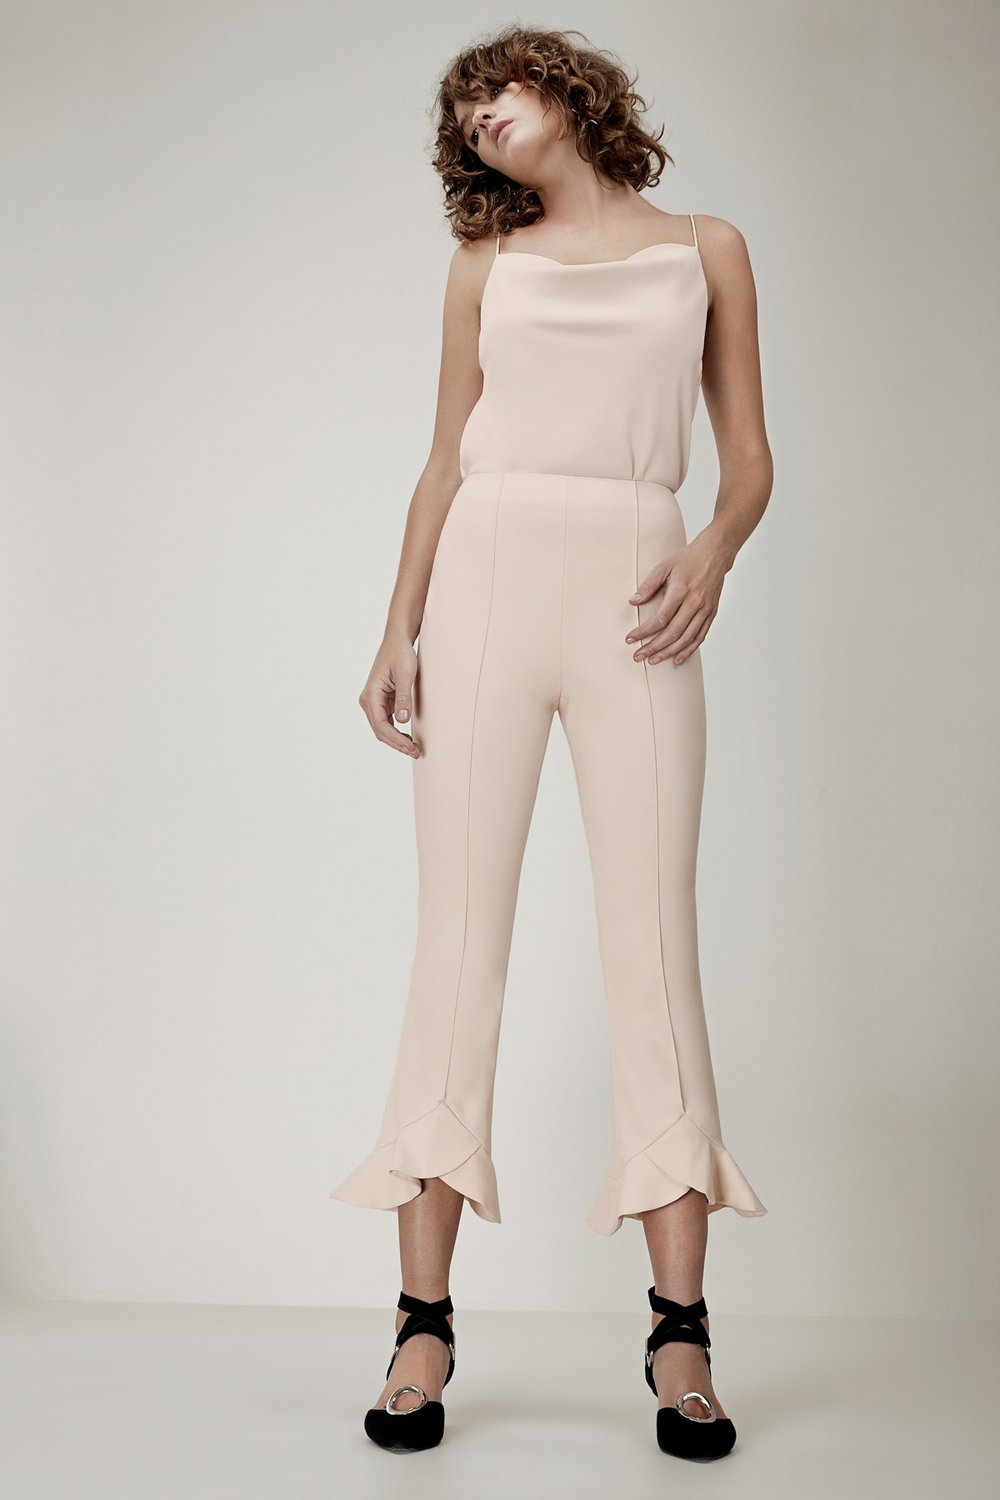 Shop C/MEO Infinite Top + First Impression Pant.